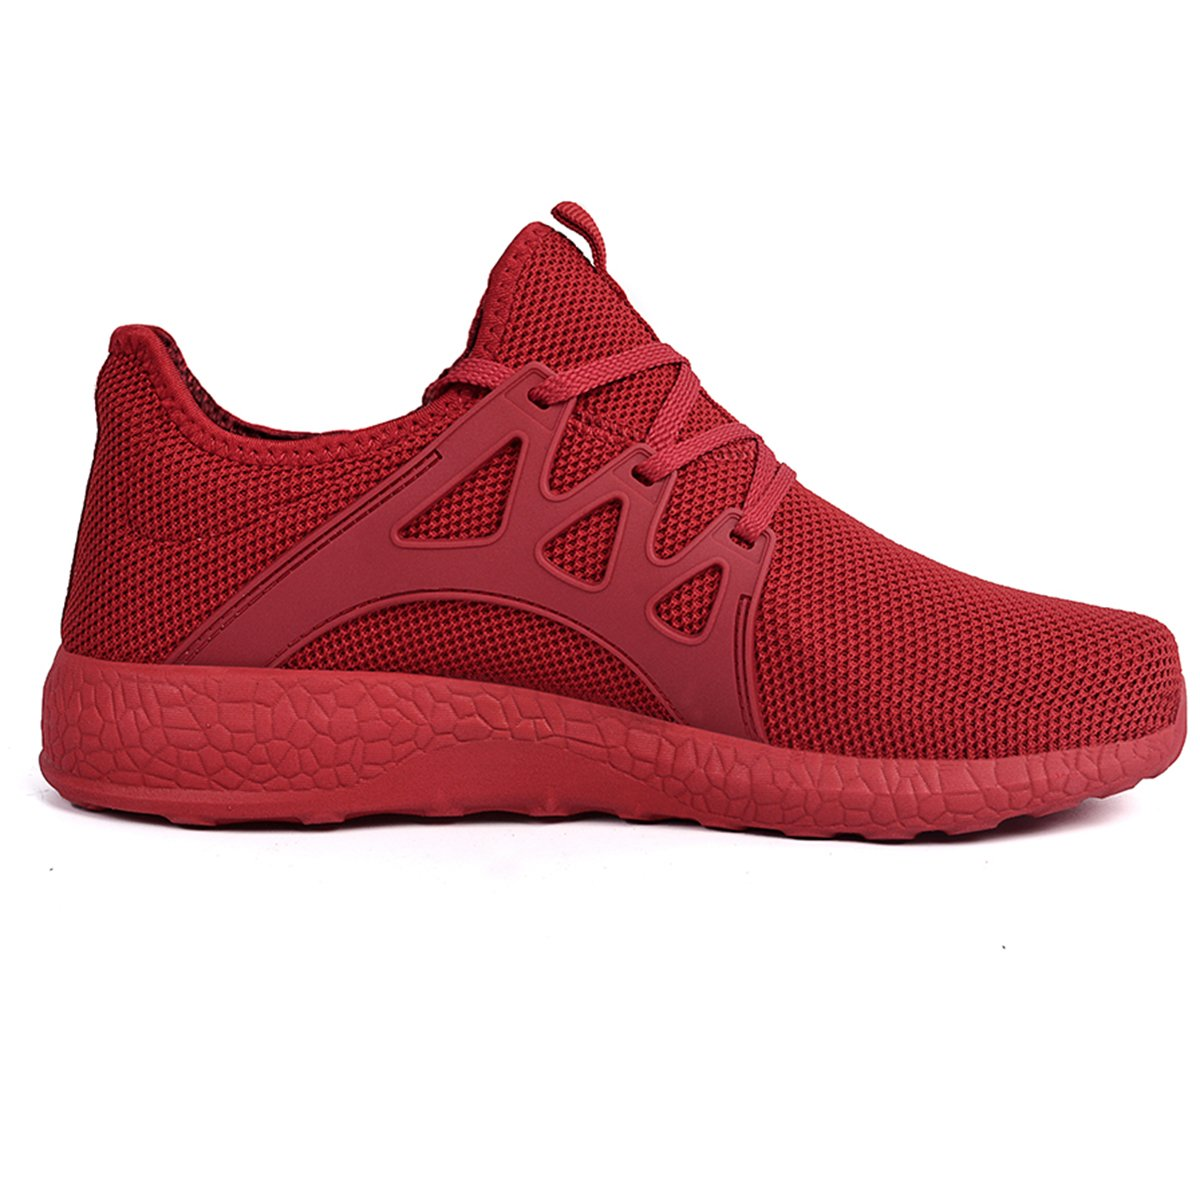 Red 7.5 D(M) US Feetmat Men's Tennis shoes Slip On Knit Walking Running Gym Sneakers